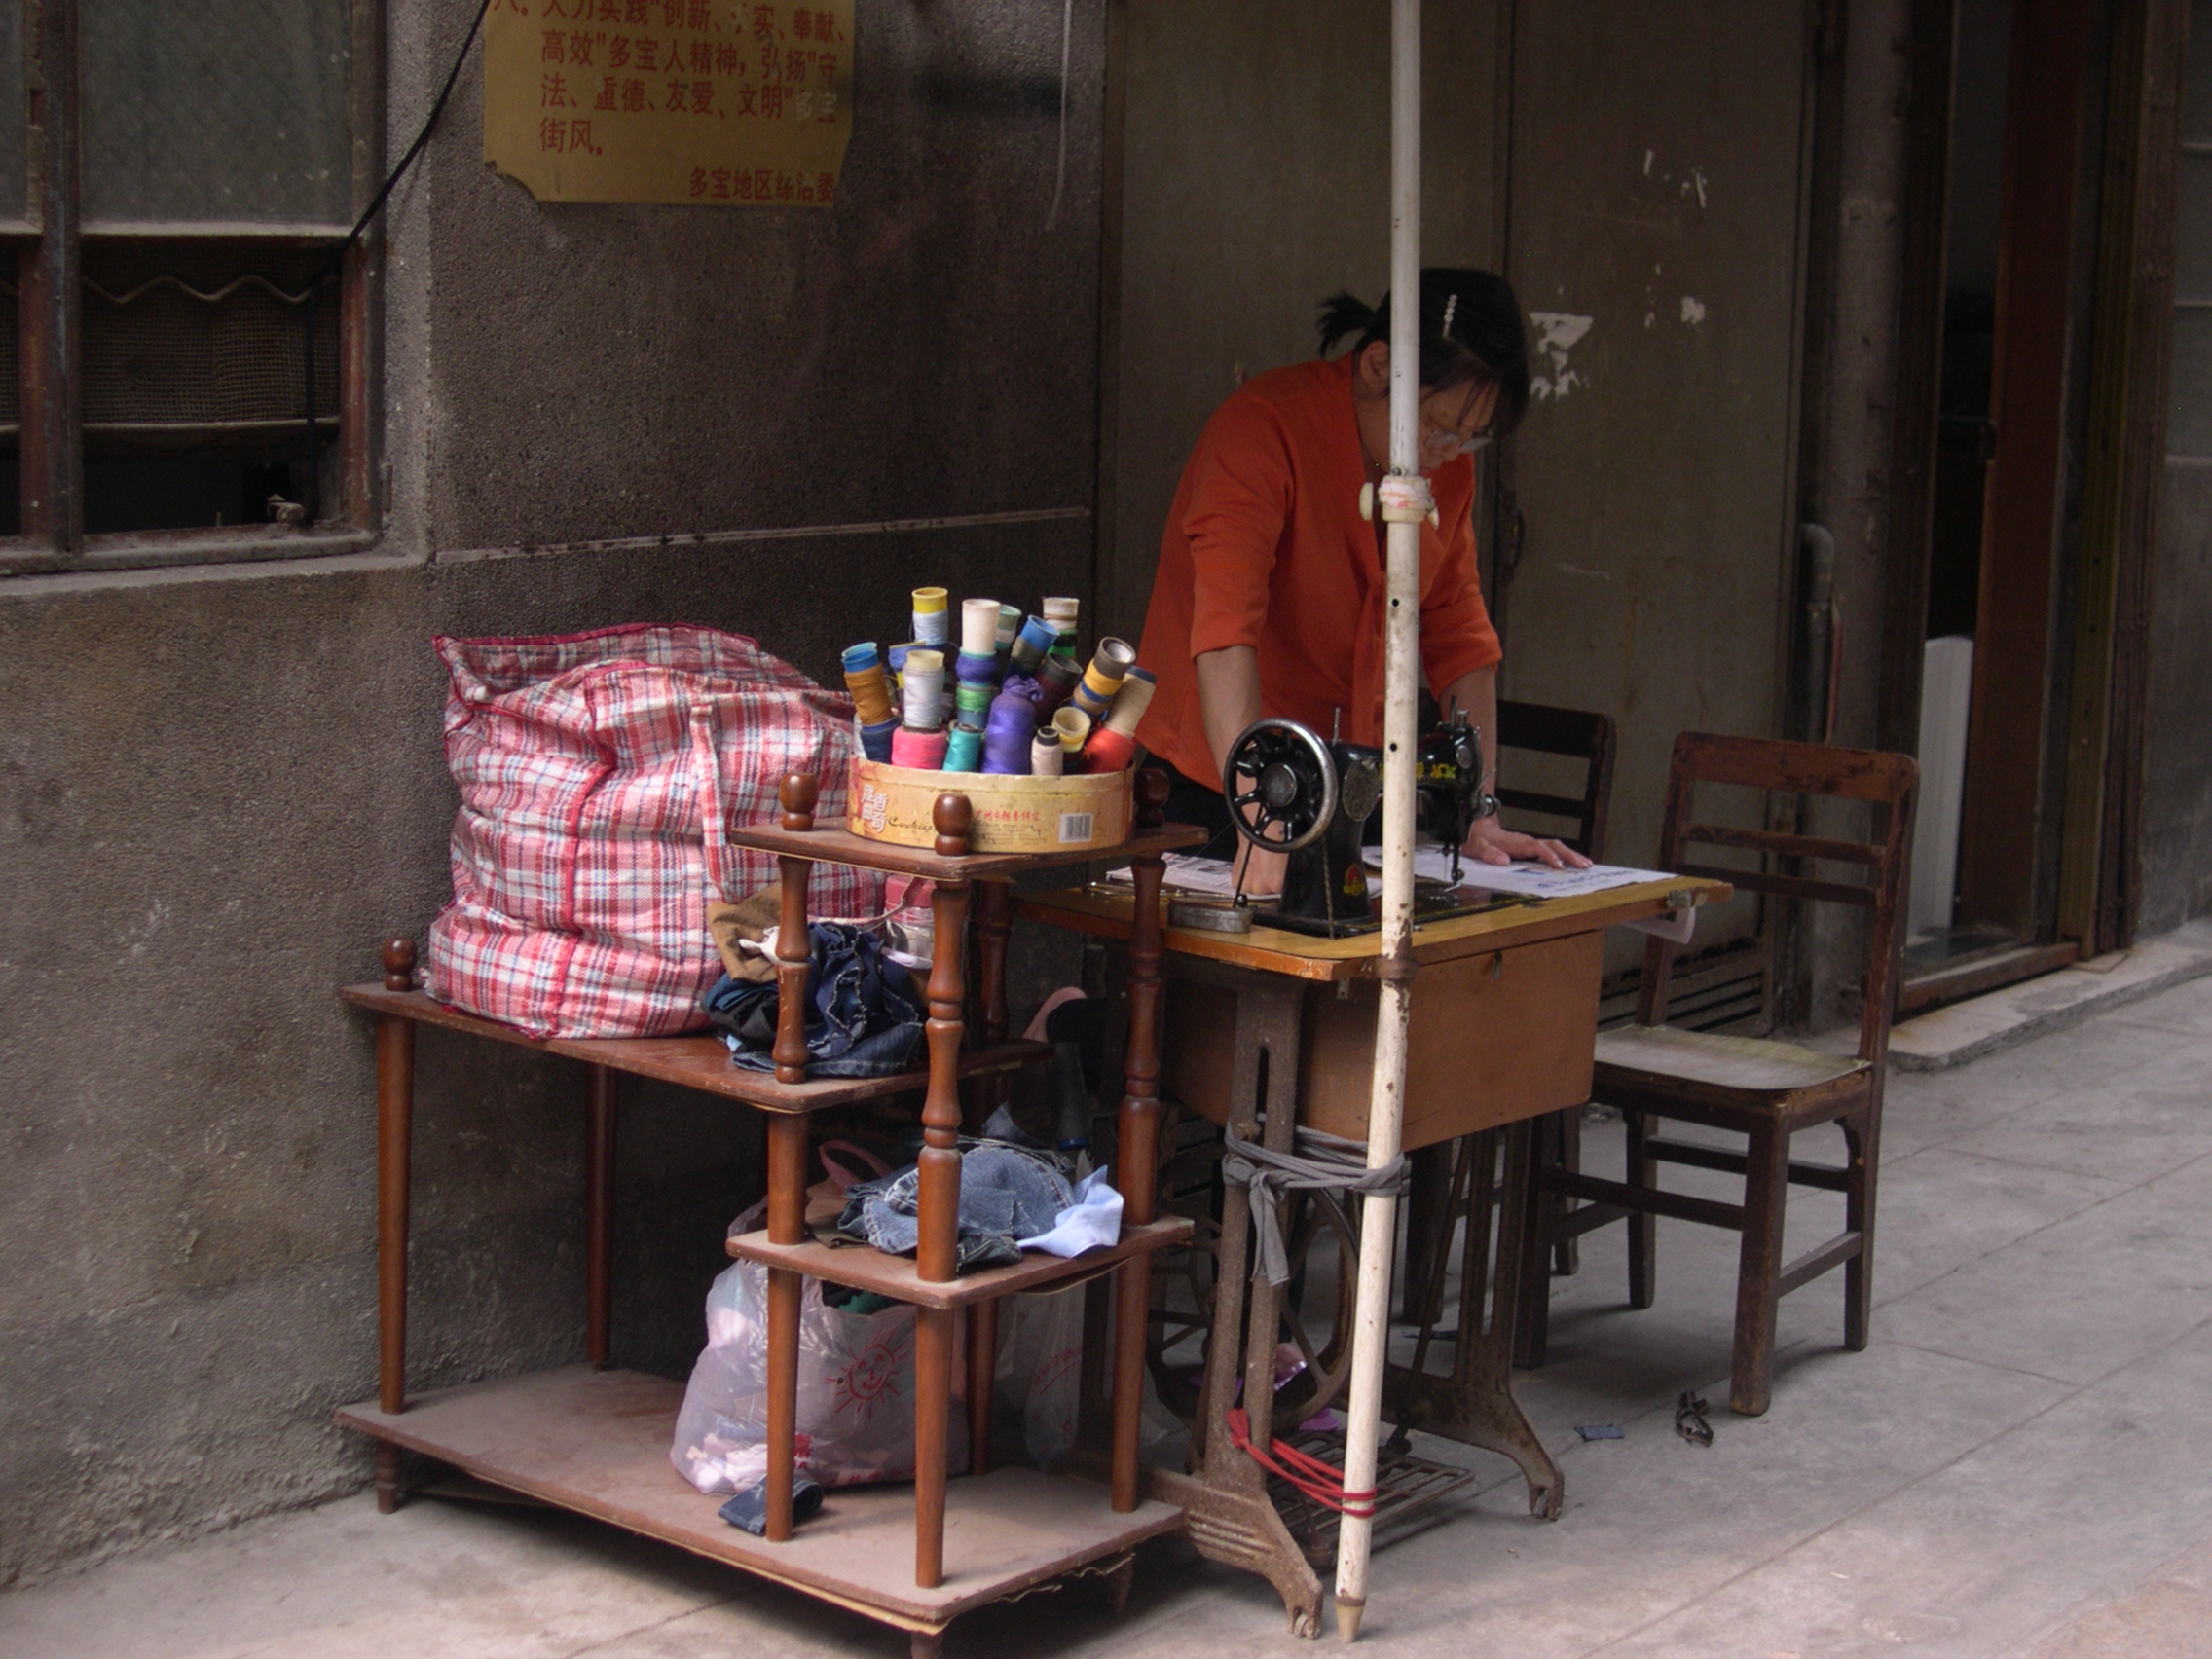 sewing business on the streets